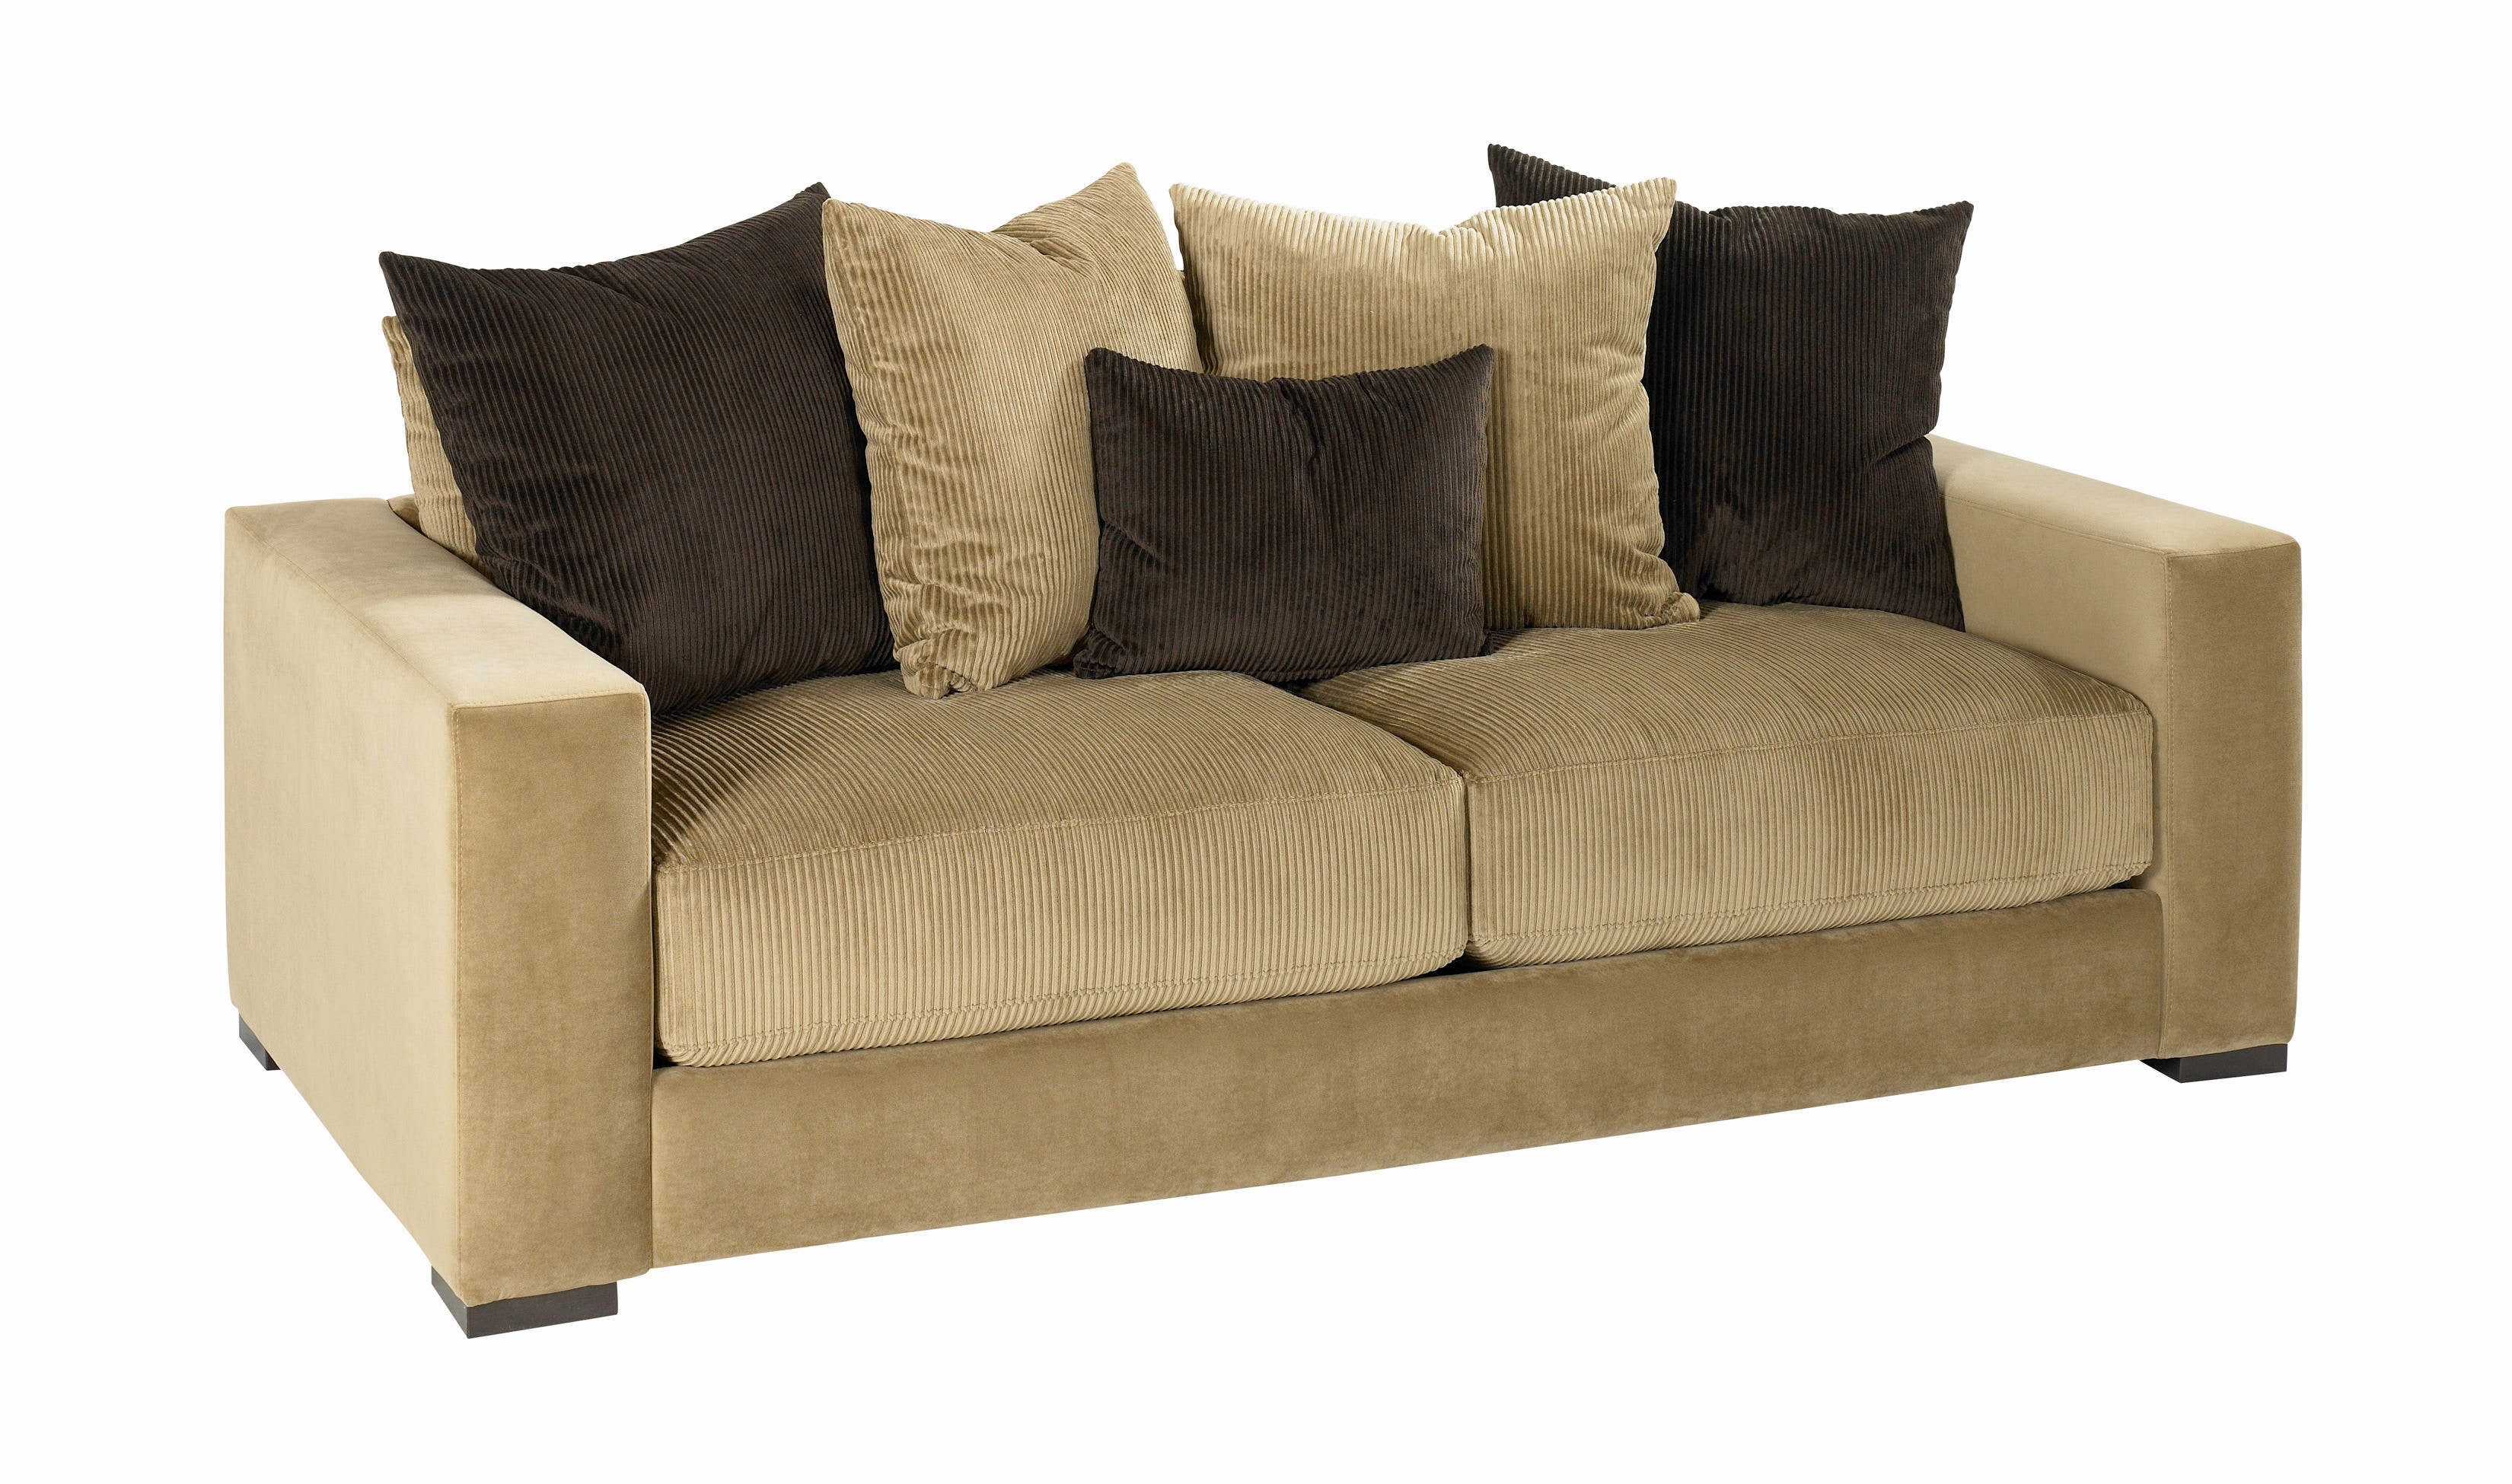 Jonathan Louis International Sofa With 2 Seat Cushions 33290A